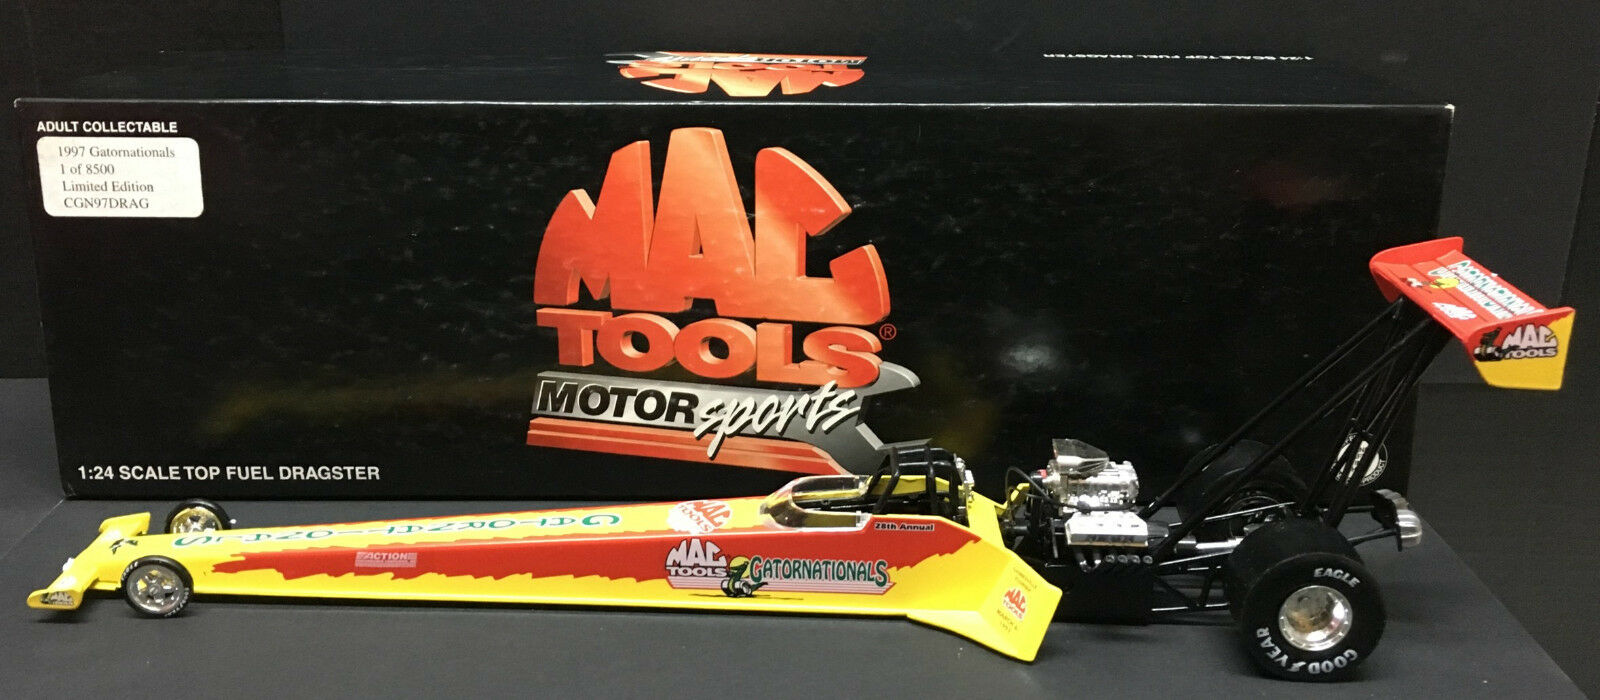 [66000] 1997 GATORNATIONALS DRAGSTER - MAC TOOLS MOTOR SPORTS - 1 of 8,500